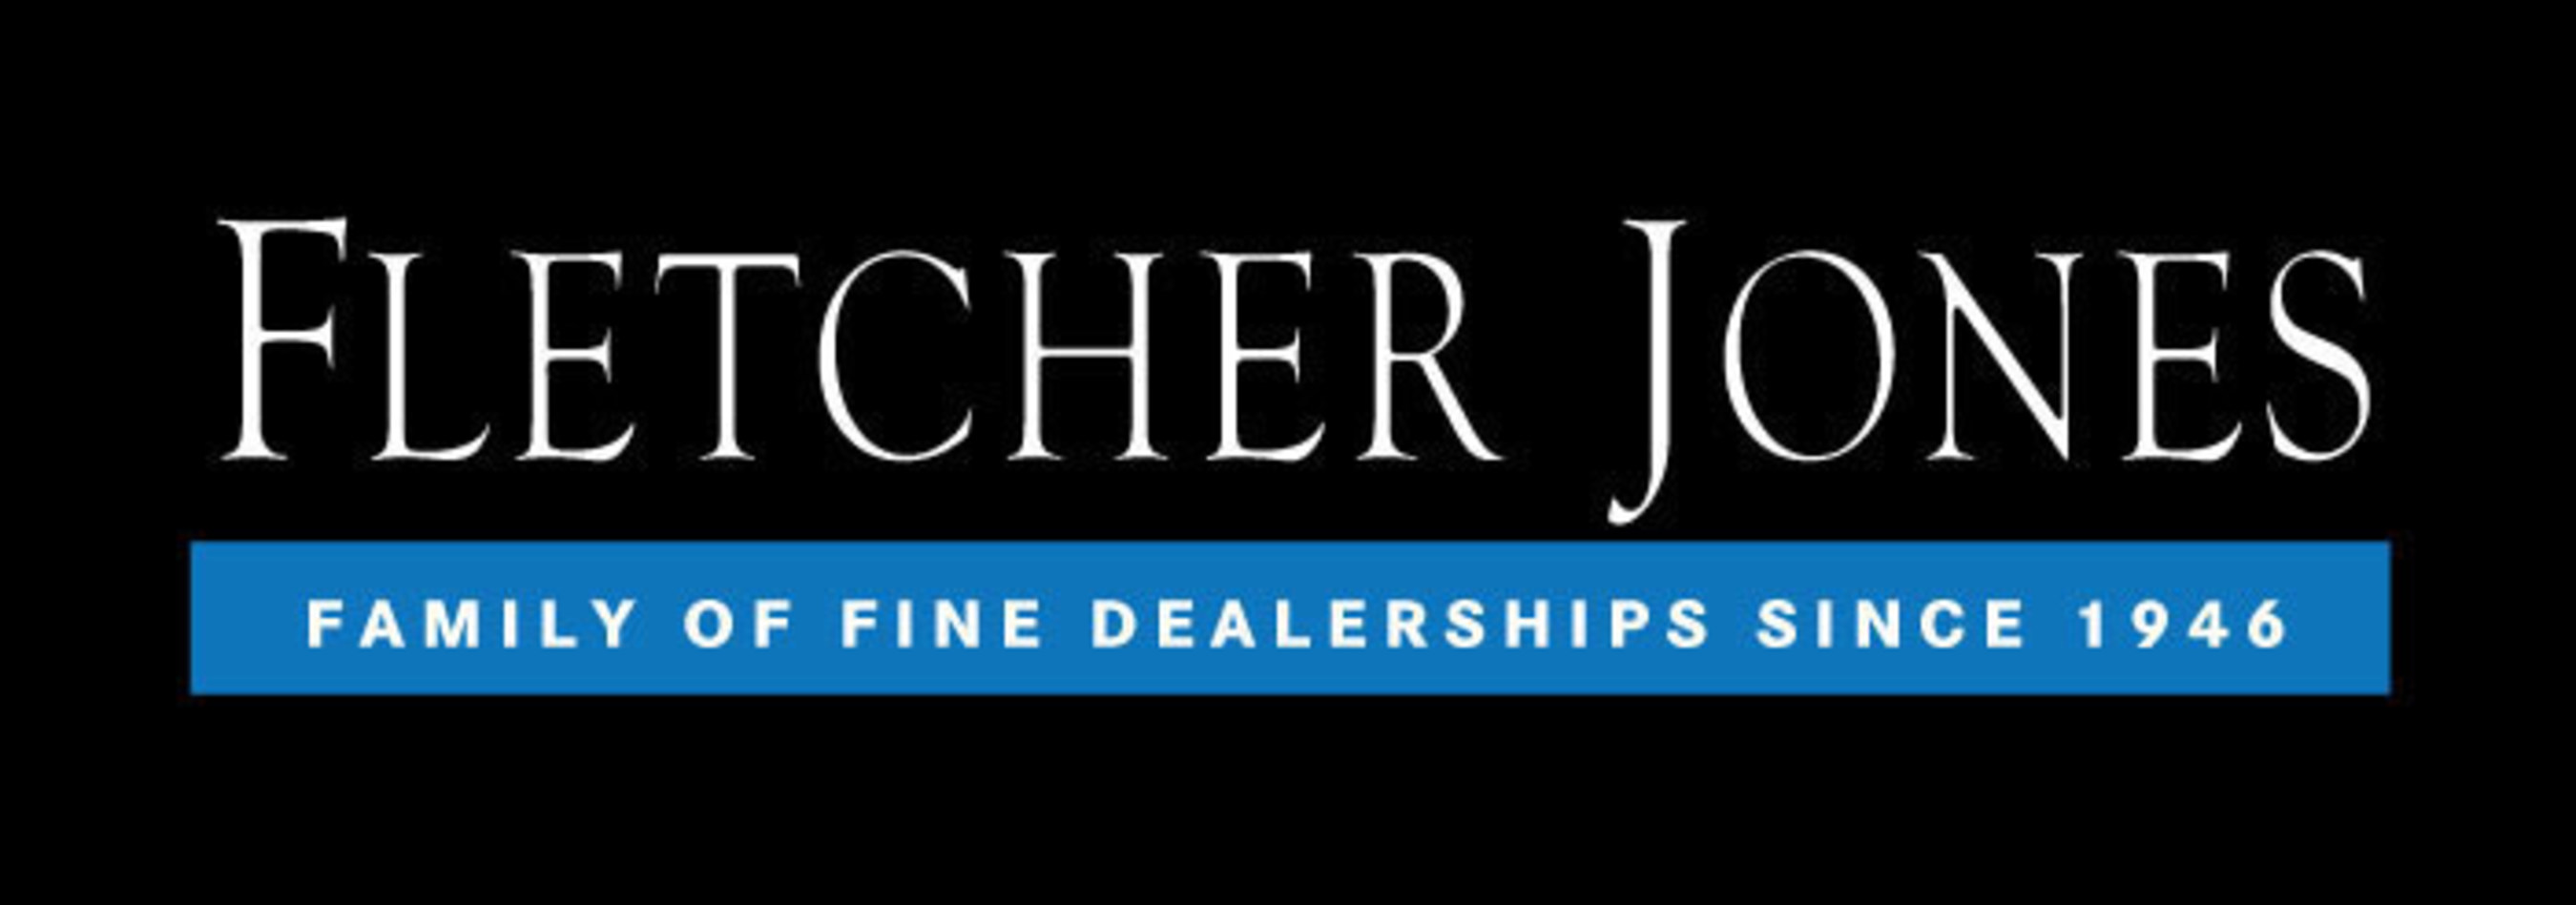 Mercedes Lease Offers >> Fletcher Jones Motorcars Launches Digital Car Sales And Finance App Powered By AutoGravity